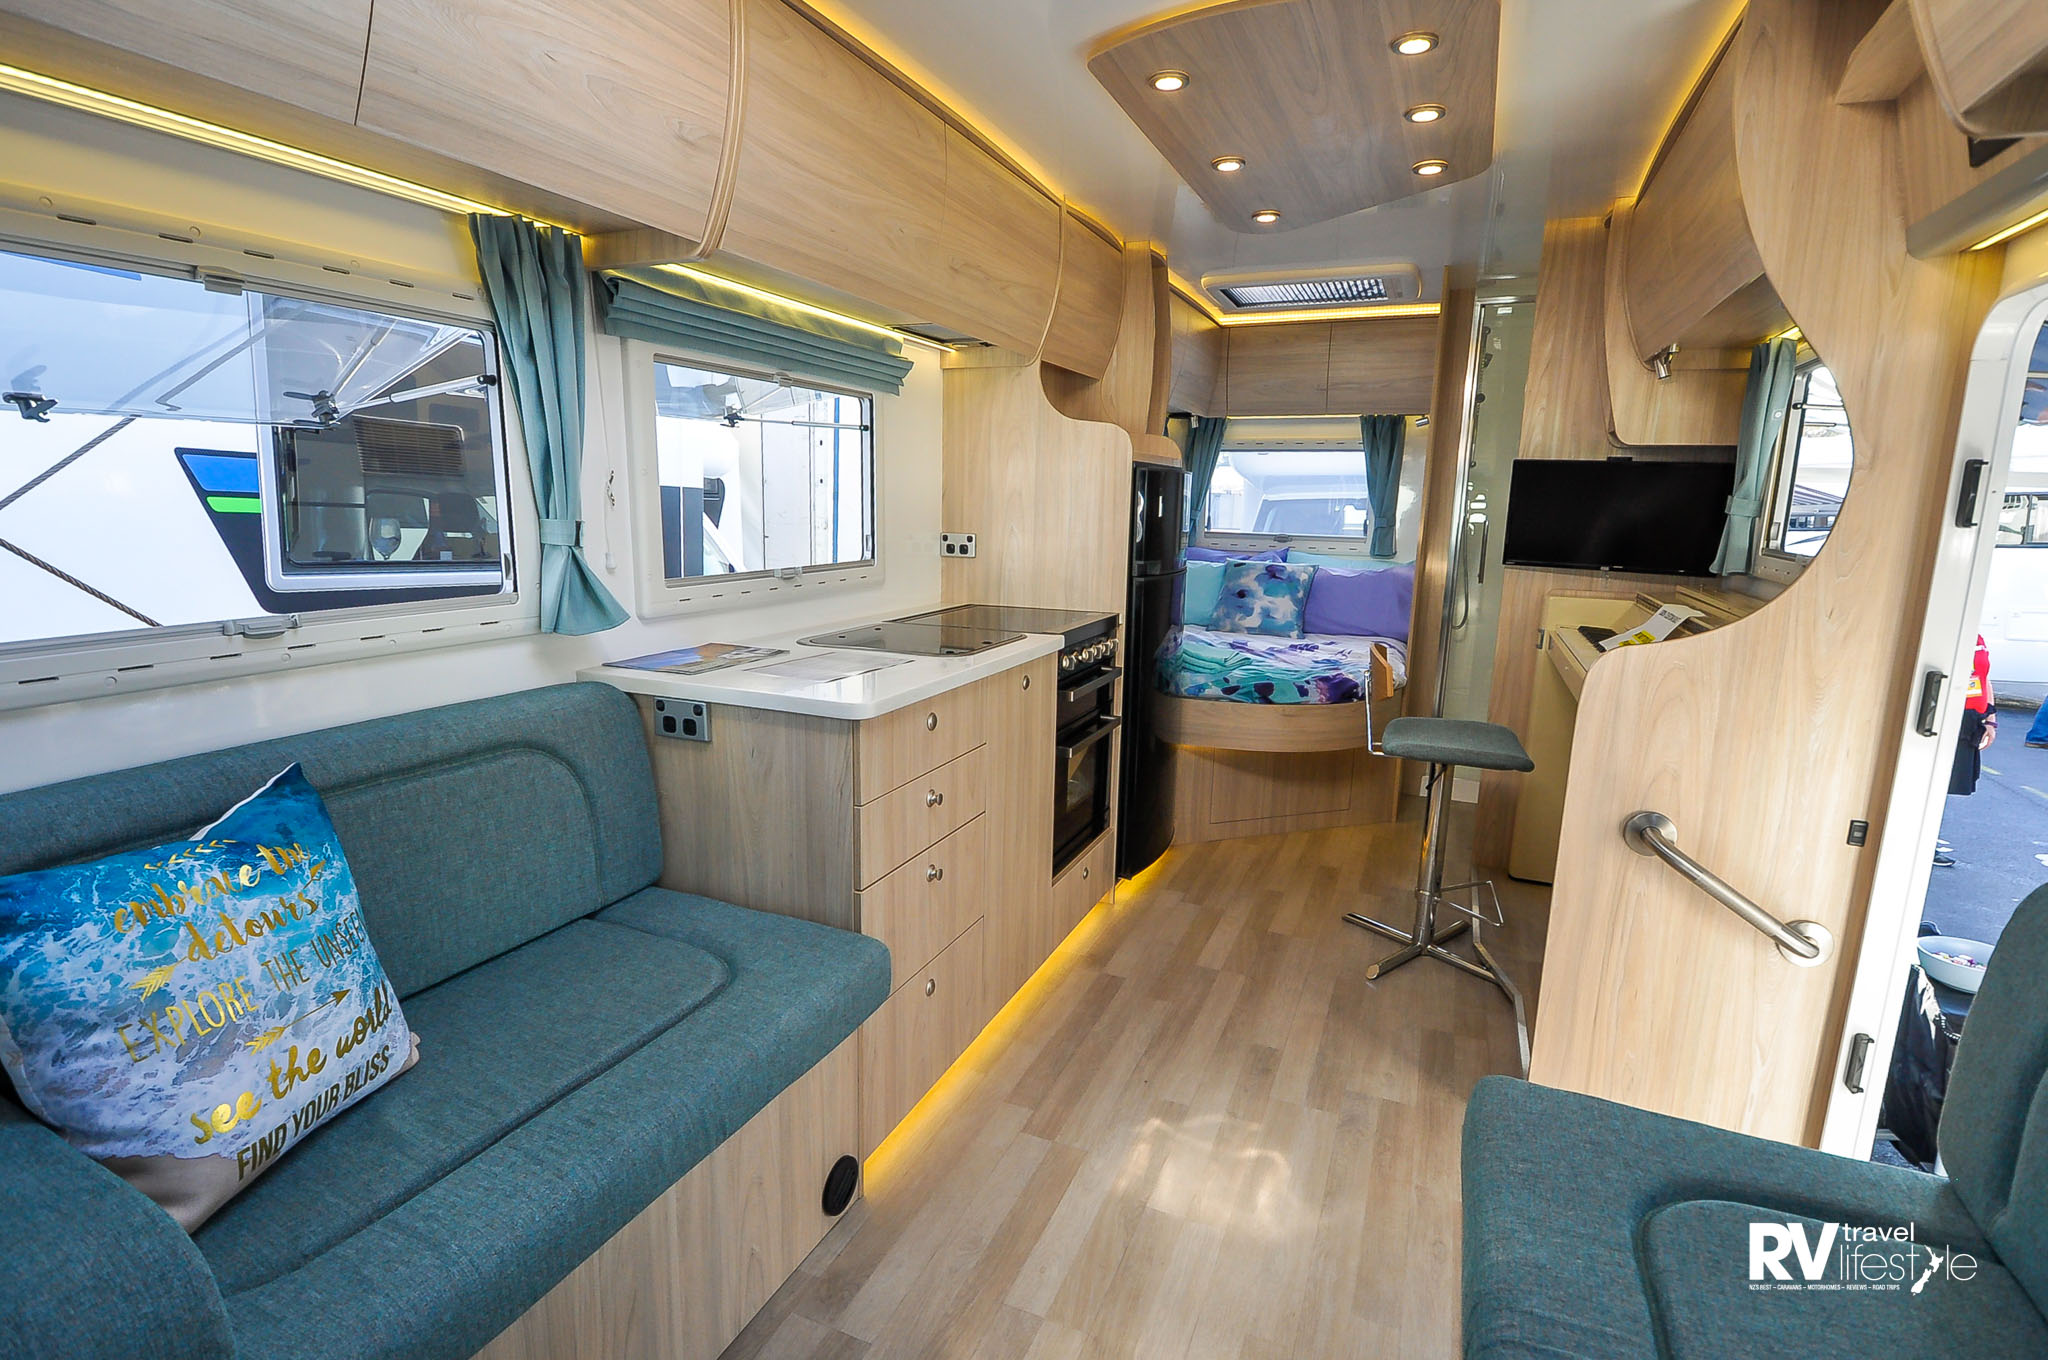 Above & below: The main seating area of the 'piano' RV is just behind the cab, while the cab-over compartment is a storage area